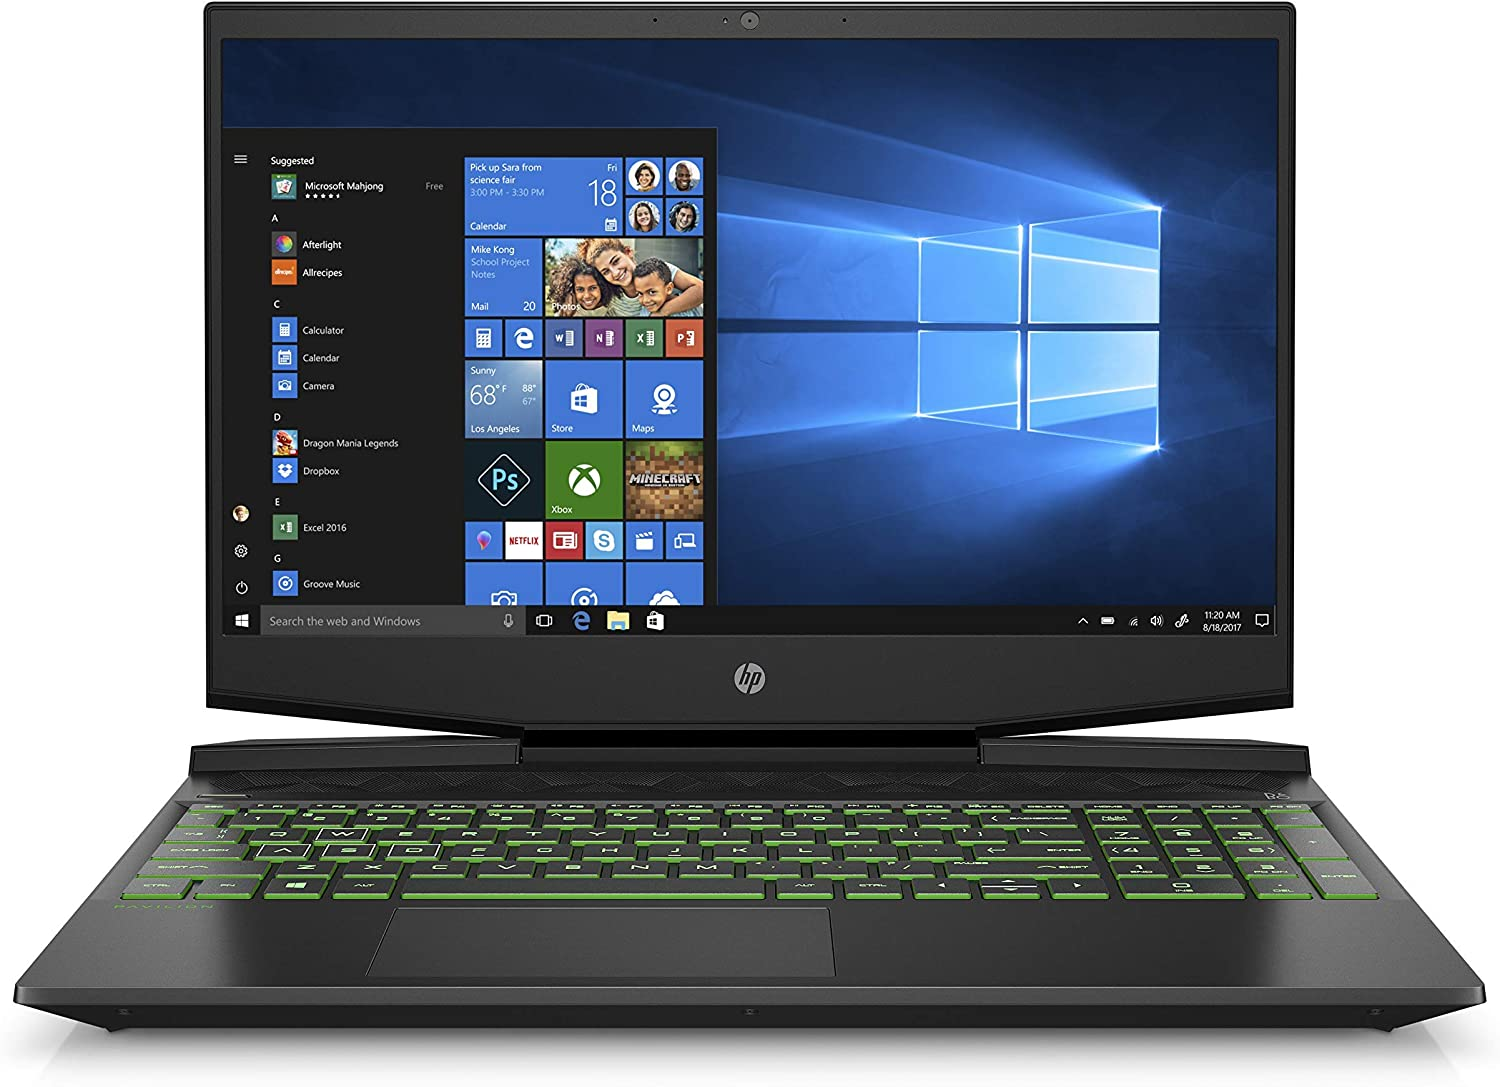 HP Pavilion Gaming 15-Inch Micro-EDGE Laptop, Intel Core i5-9300H Processor, NVIDIA GeForce GTX 1050 (3 GB), 8 GB SDRAM, 256 GB SSD, Windows 10 Home (15-dk0010nr, Shadow Black/Acid Green) (Renewed)